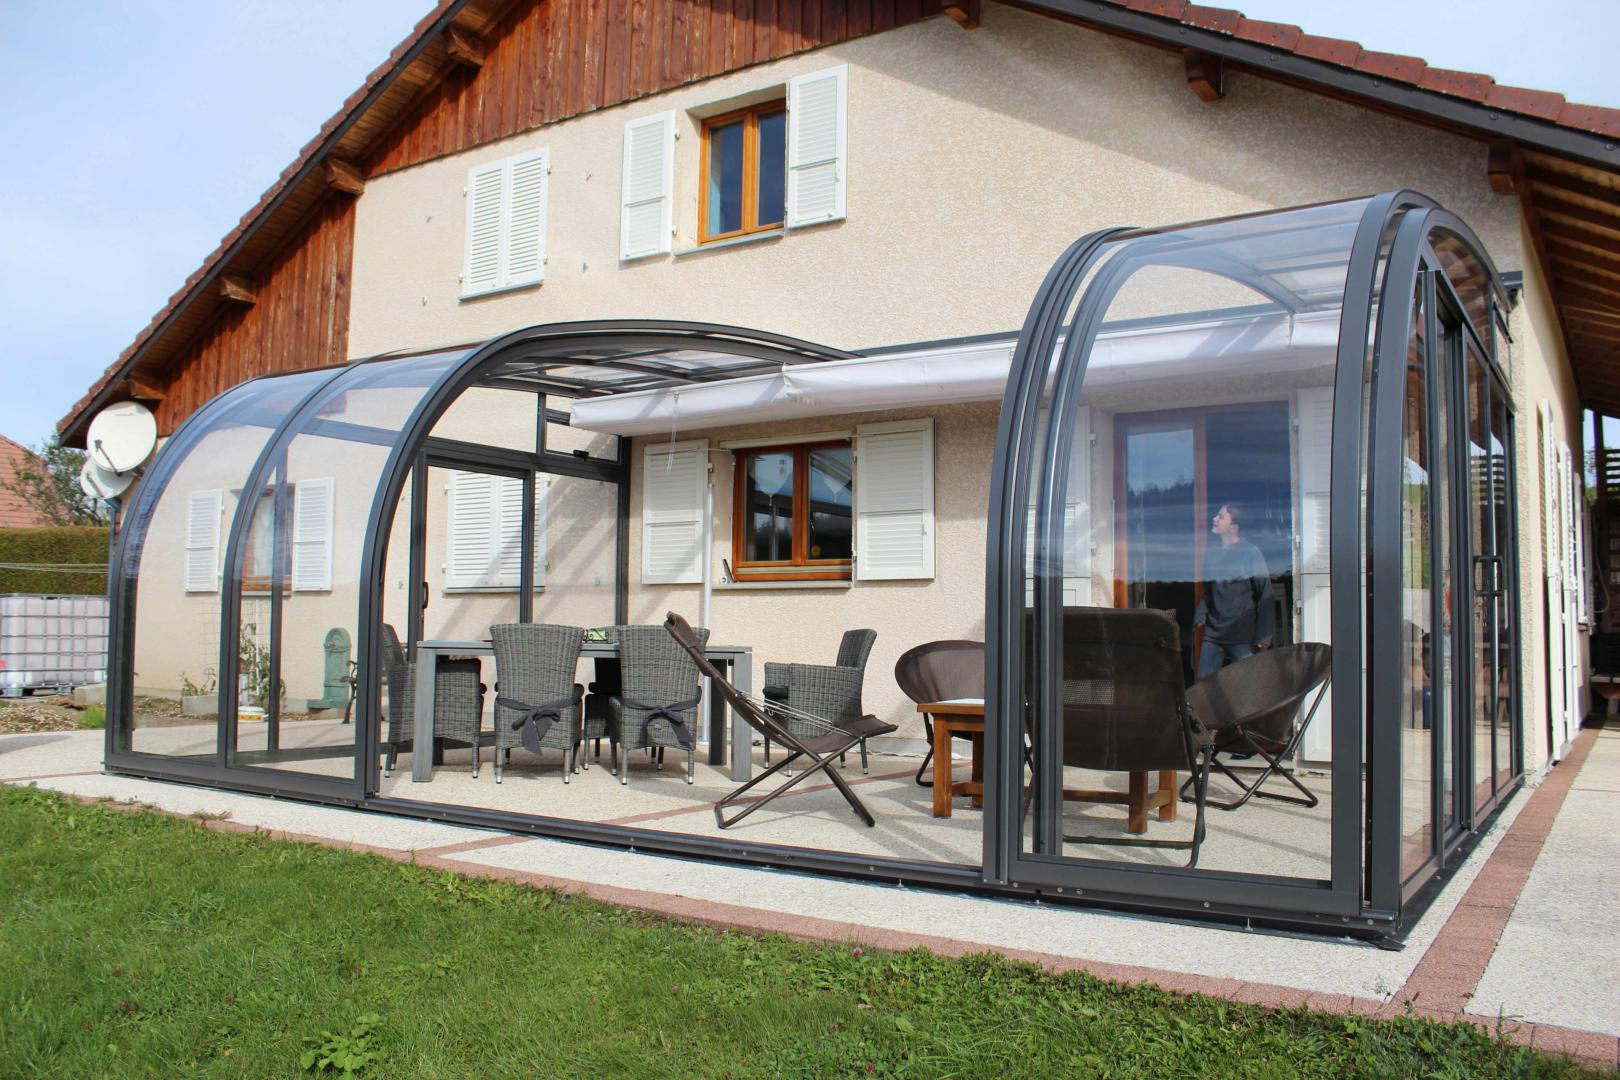 Store De Terrasse Retractable Abri De Terrasse Coulissant Et Veranda Retractable